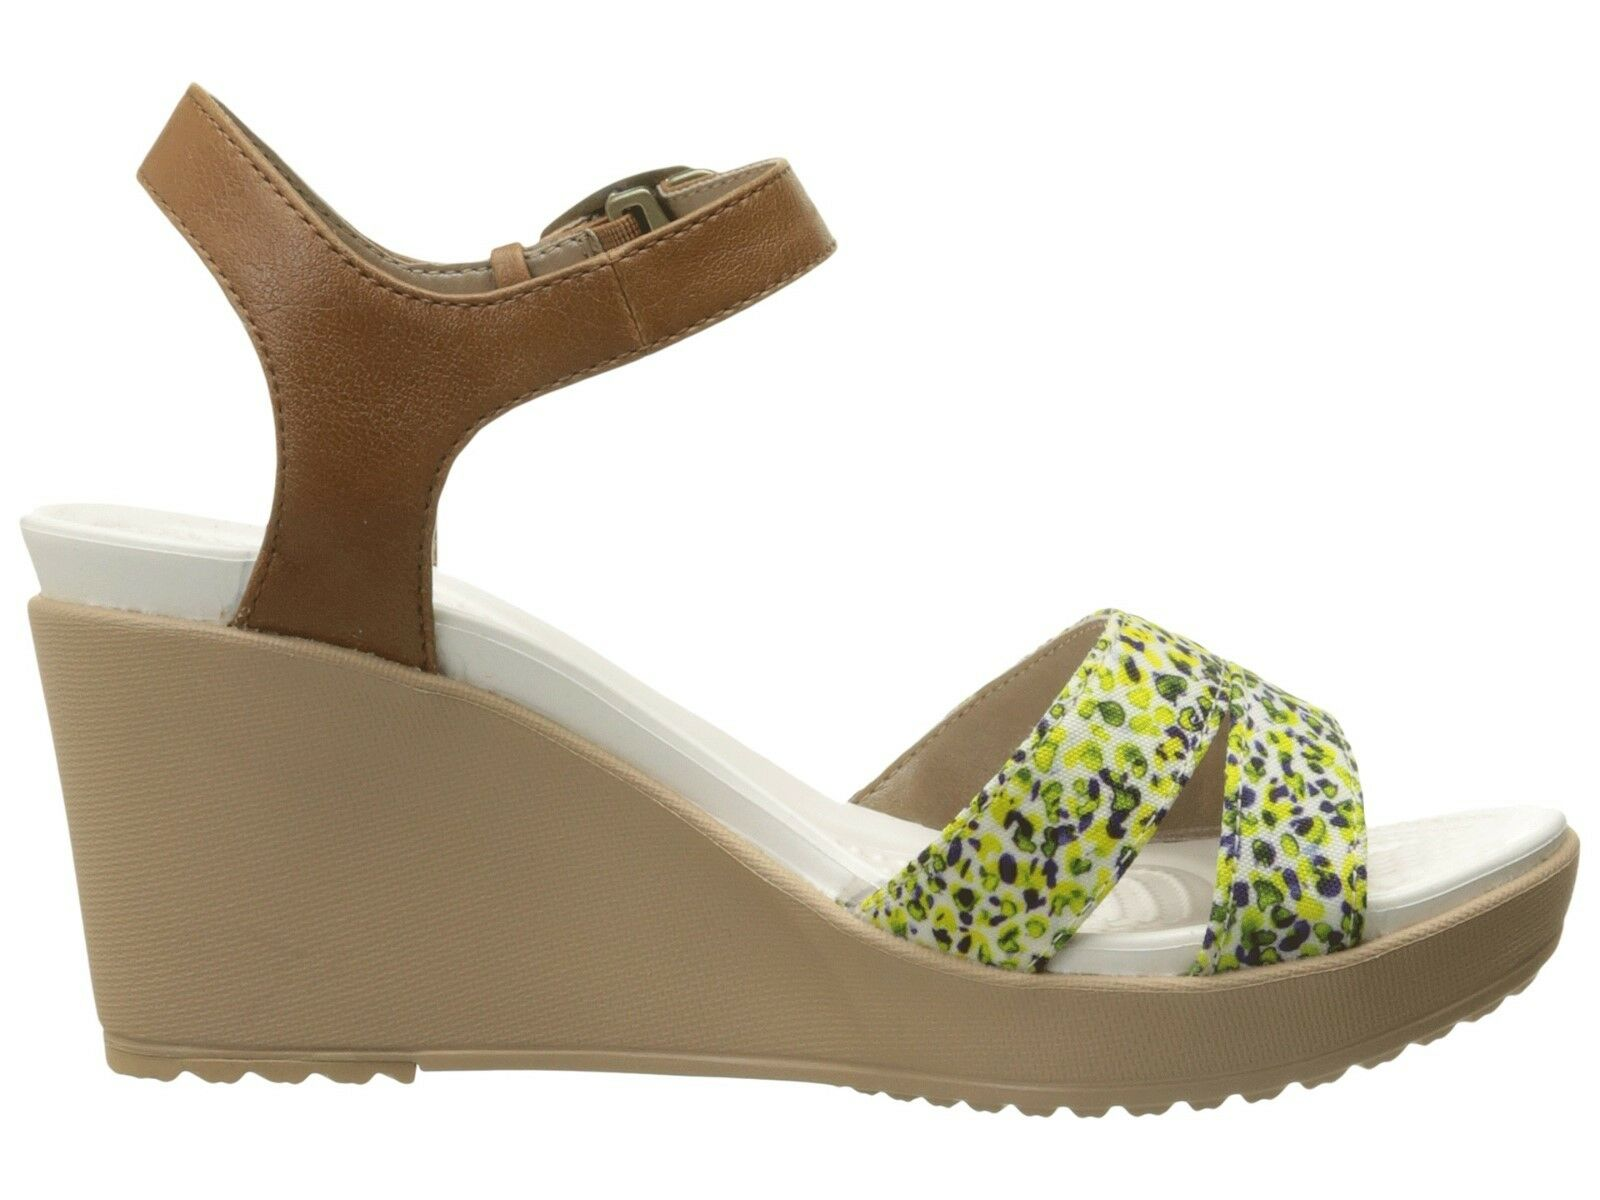 Crocs Leigh II Ankle Strap Graphic Wedge Hazelnut/Gold